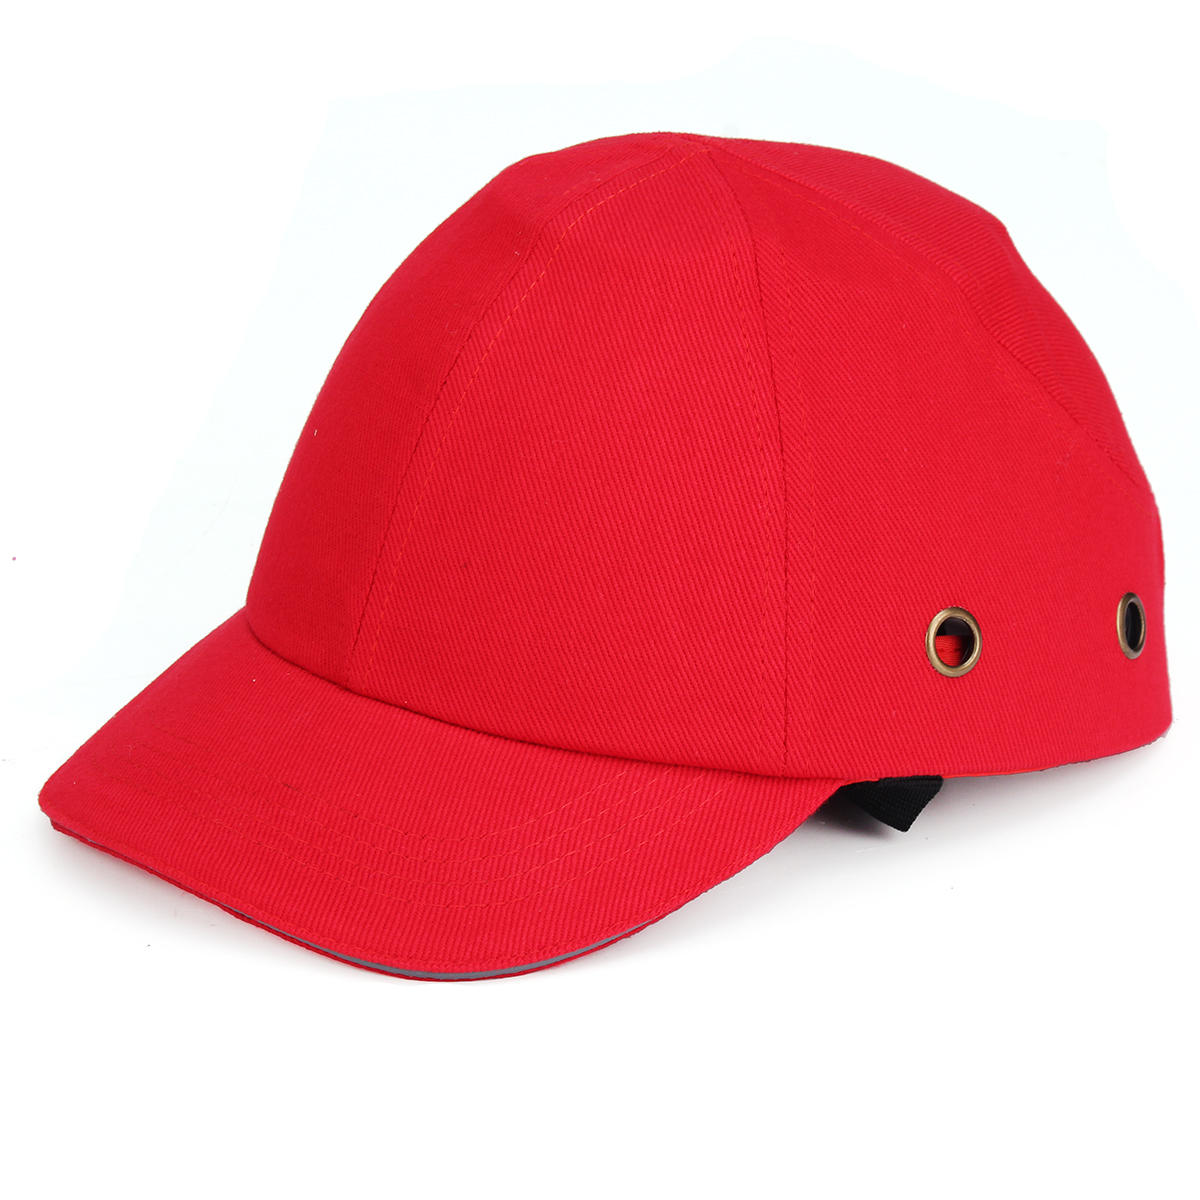 Half Face Helm Baseball Style Hart Hut Vent Coole Schutz Bump Cap Safety Workwear